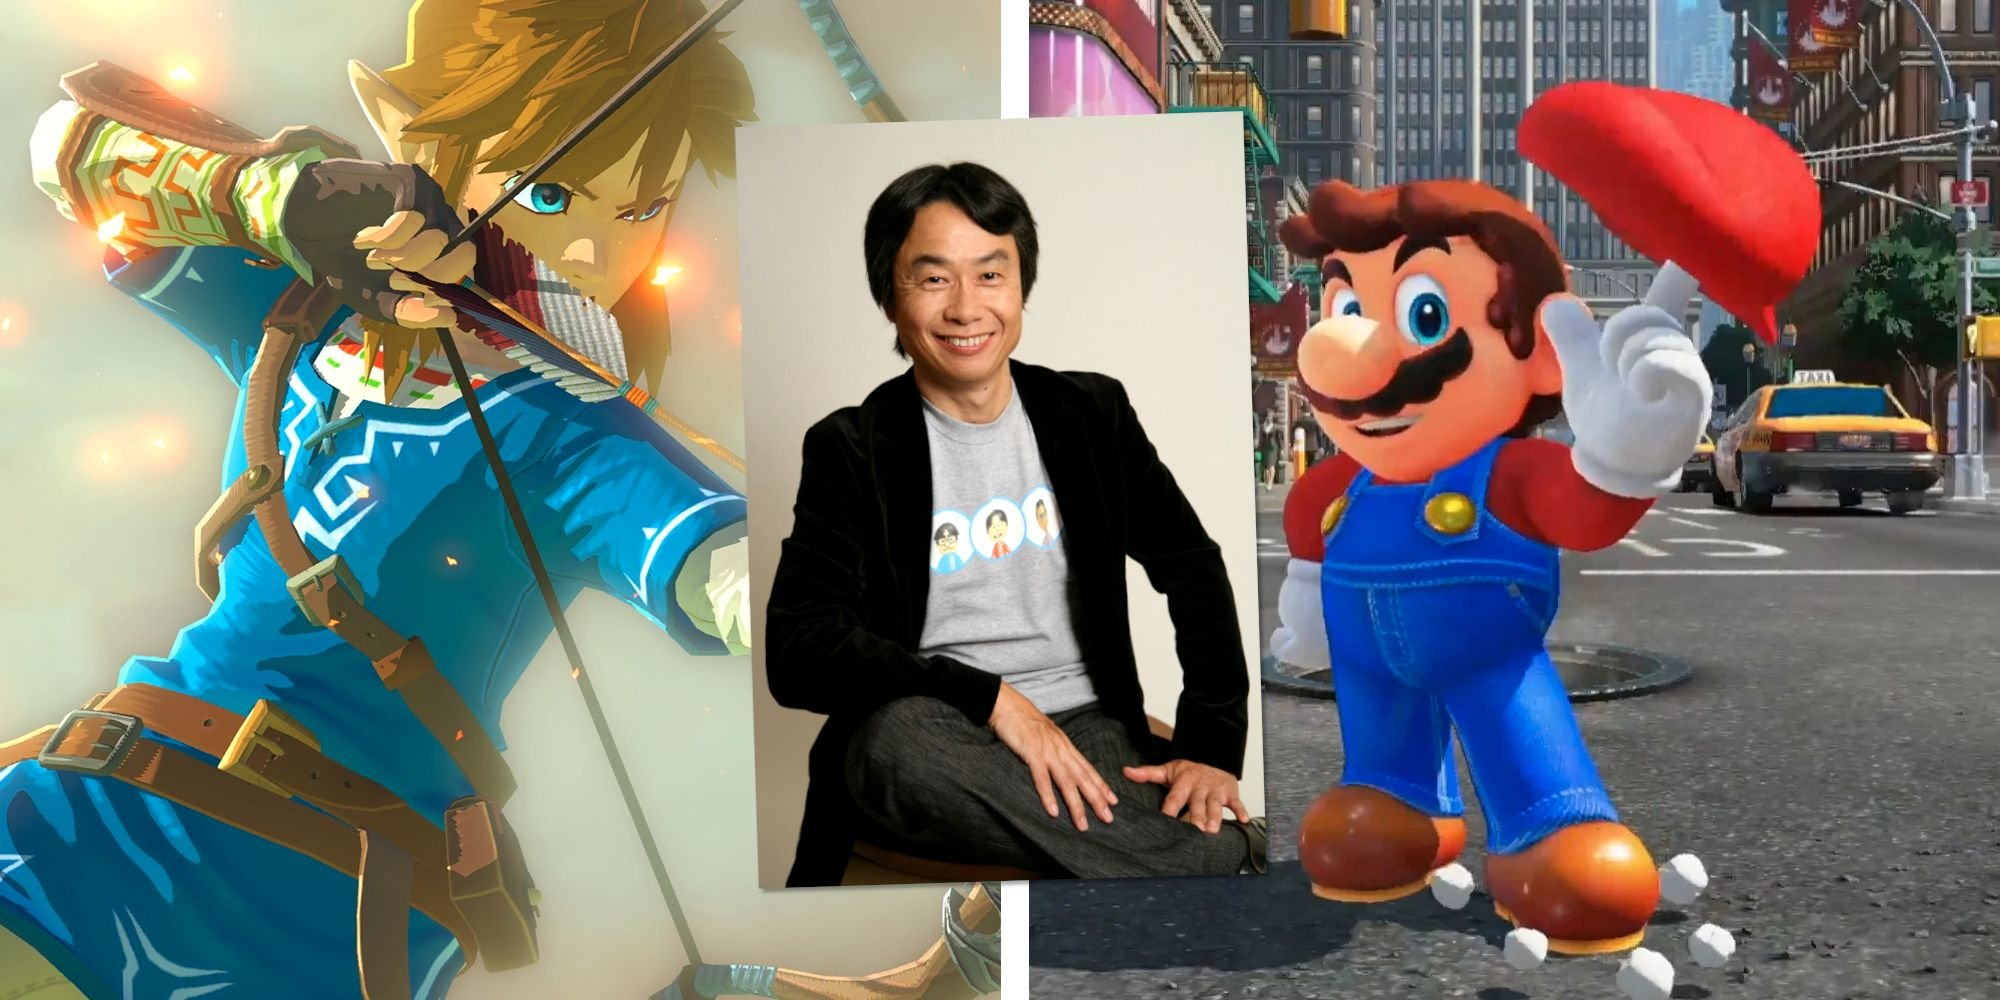 The 10 People Behind The Most Influential Nintendo Franchises